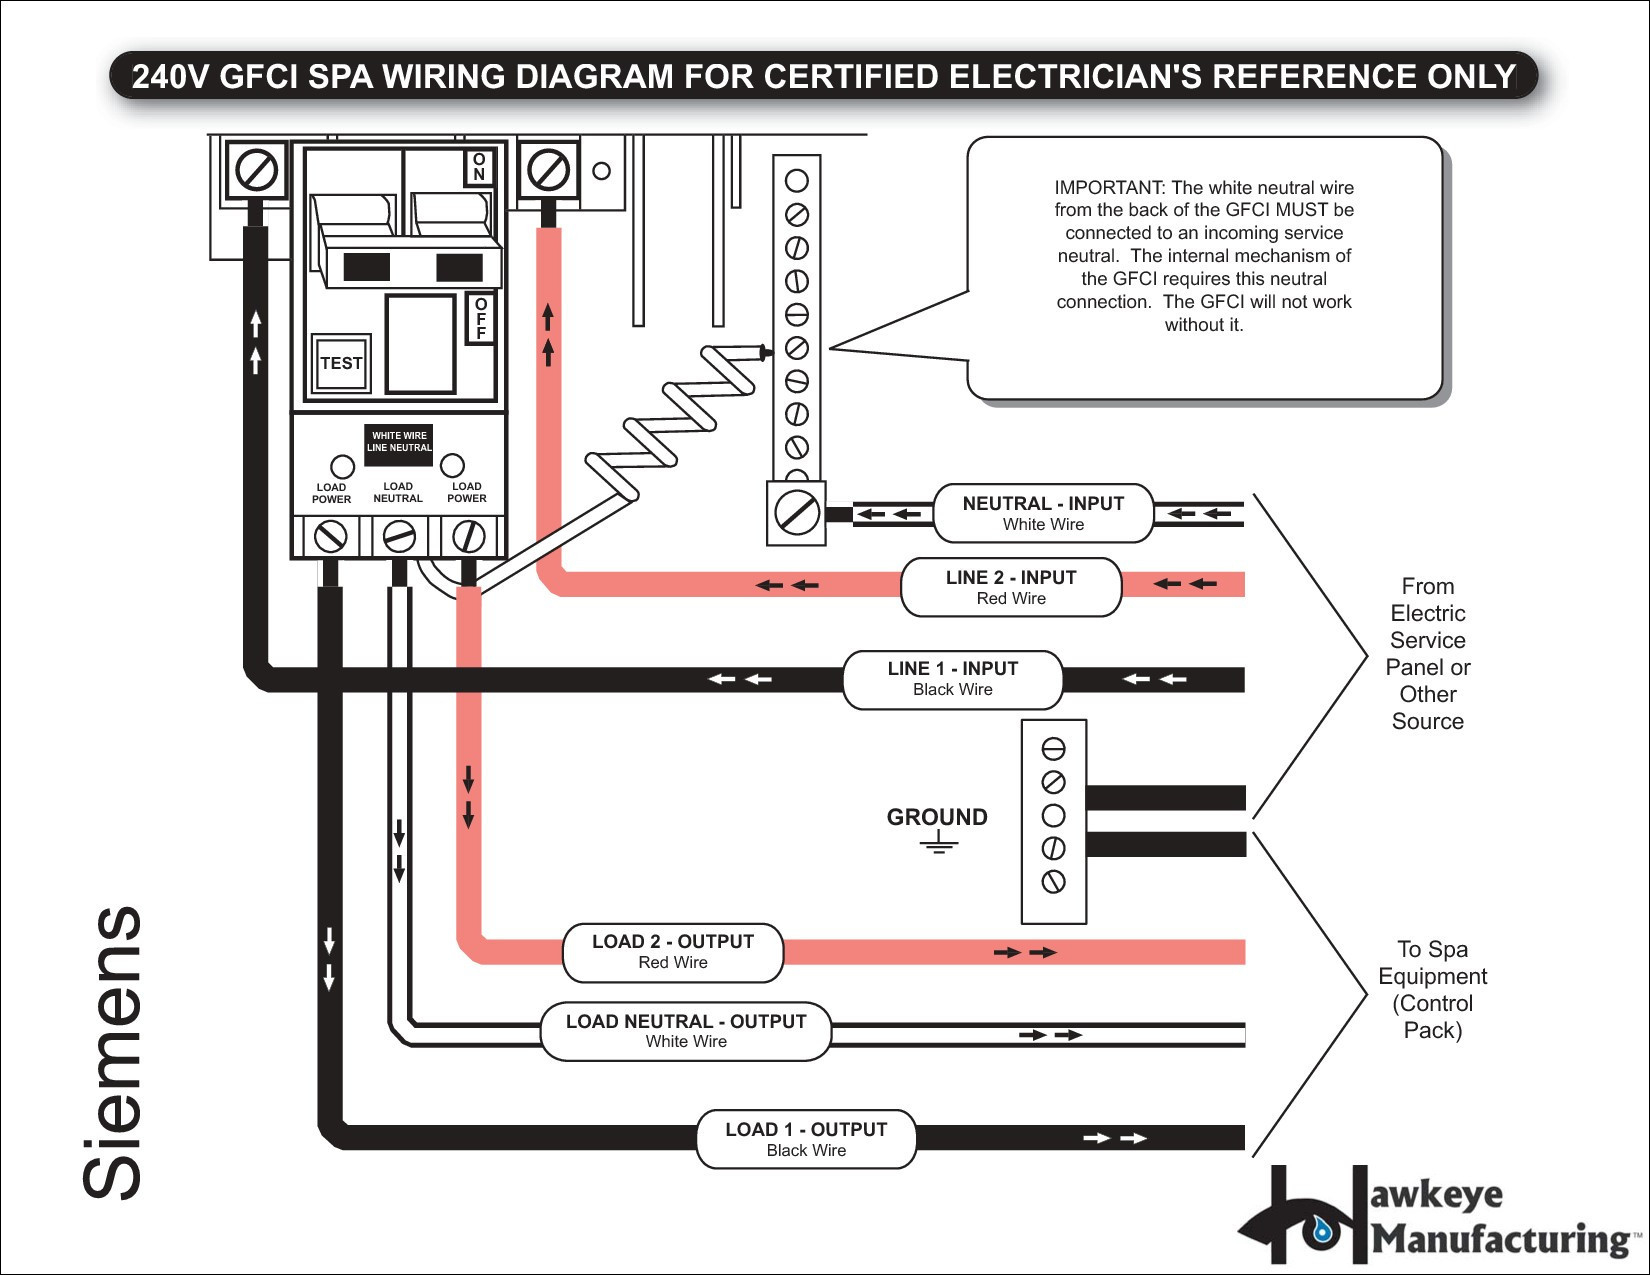 Double Pole Breaker Wiring Diagram Wiring Diagram Moneydiagrams Adamediamedmera Se